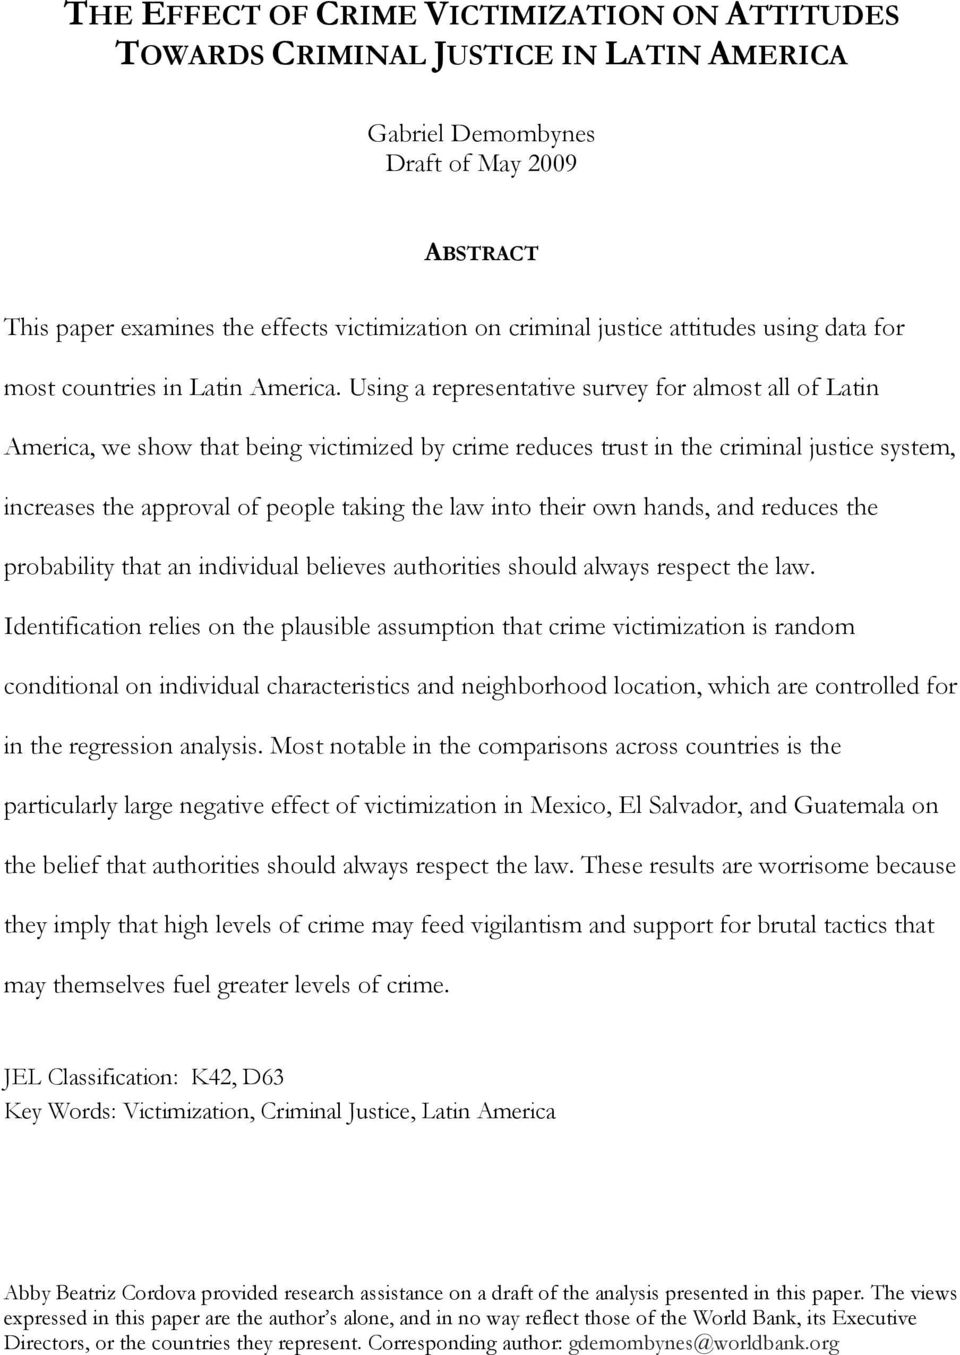 Using a representative survey for almost all of Latin America, we show that being victimized by crime reduces trust in the criminal justice system, increases the approval of people taking the law